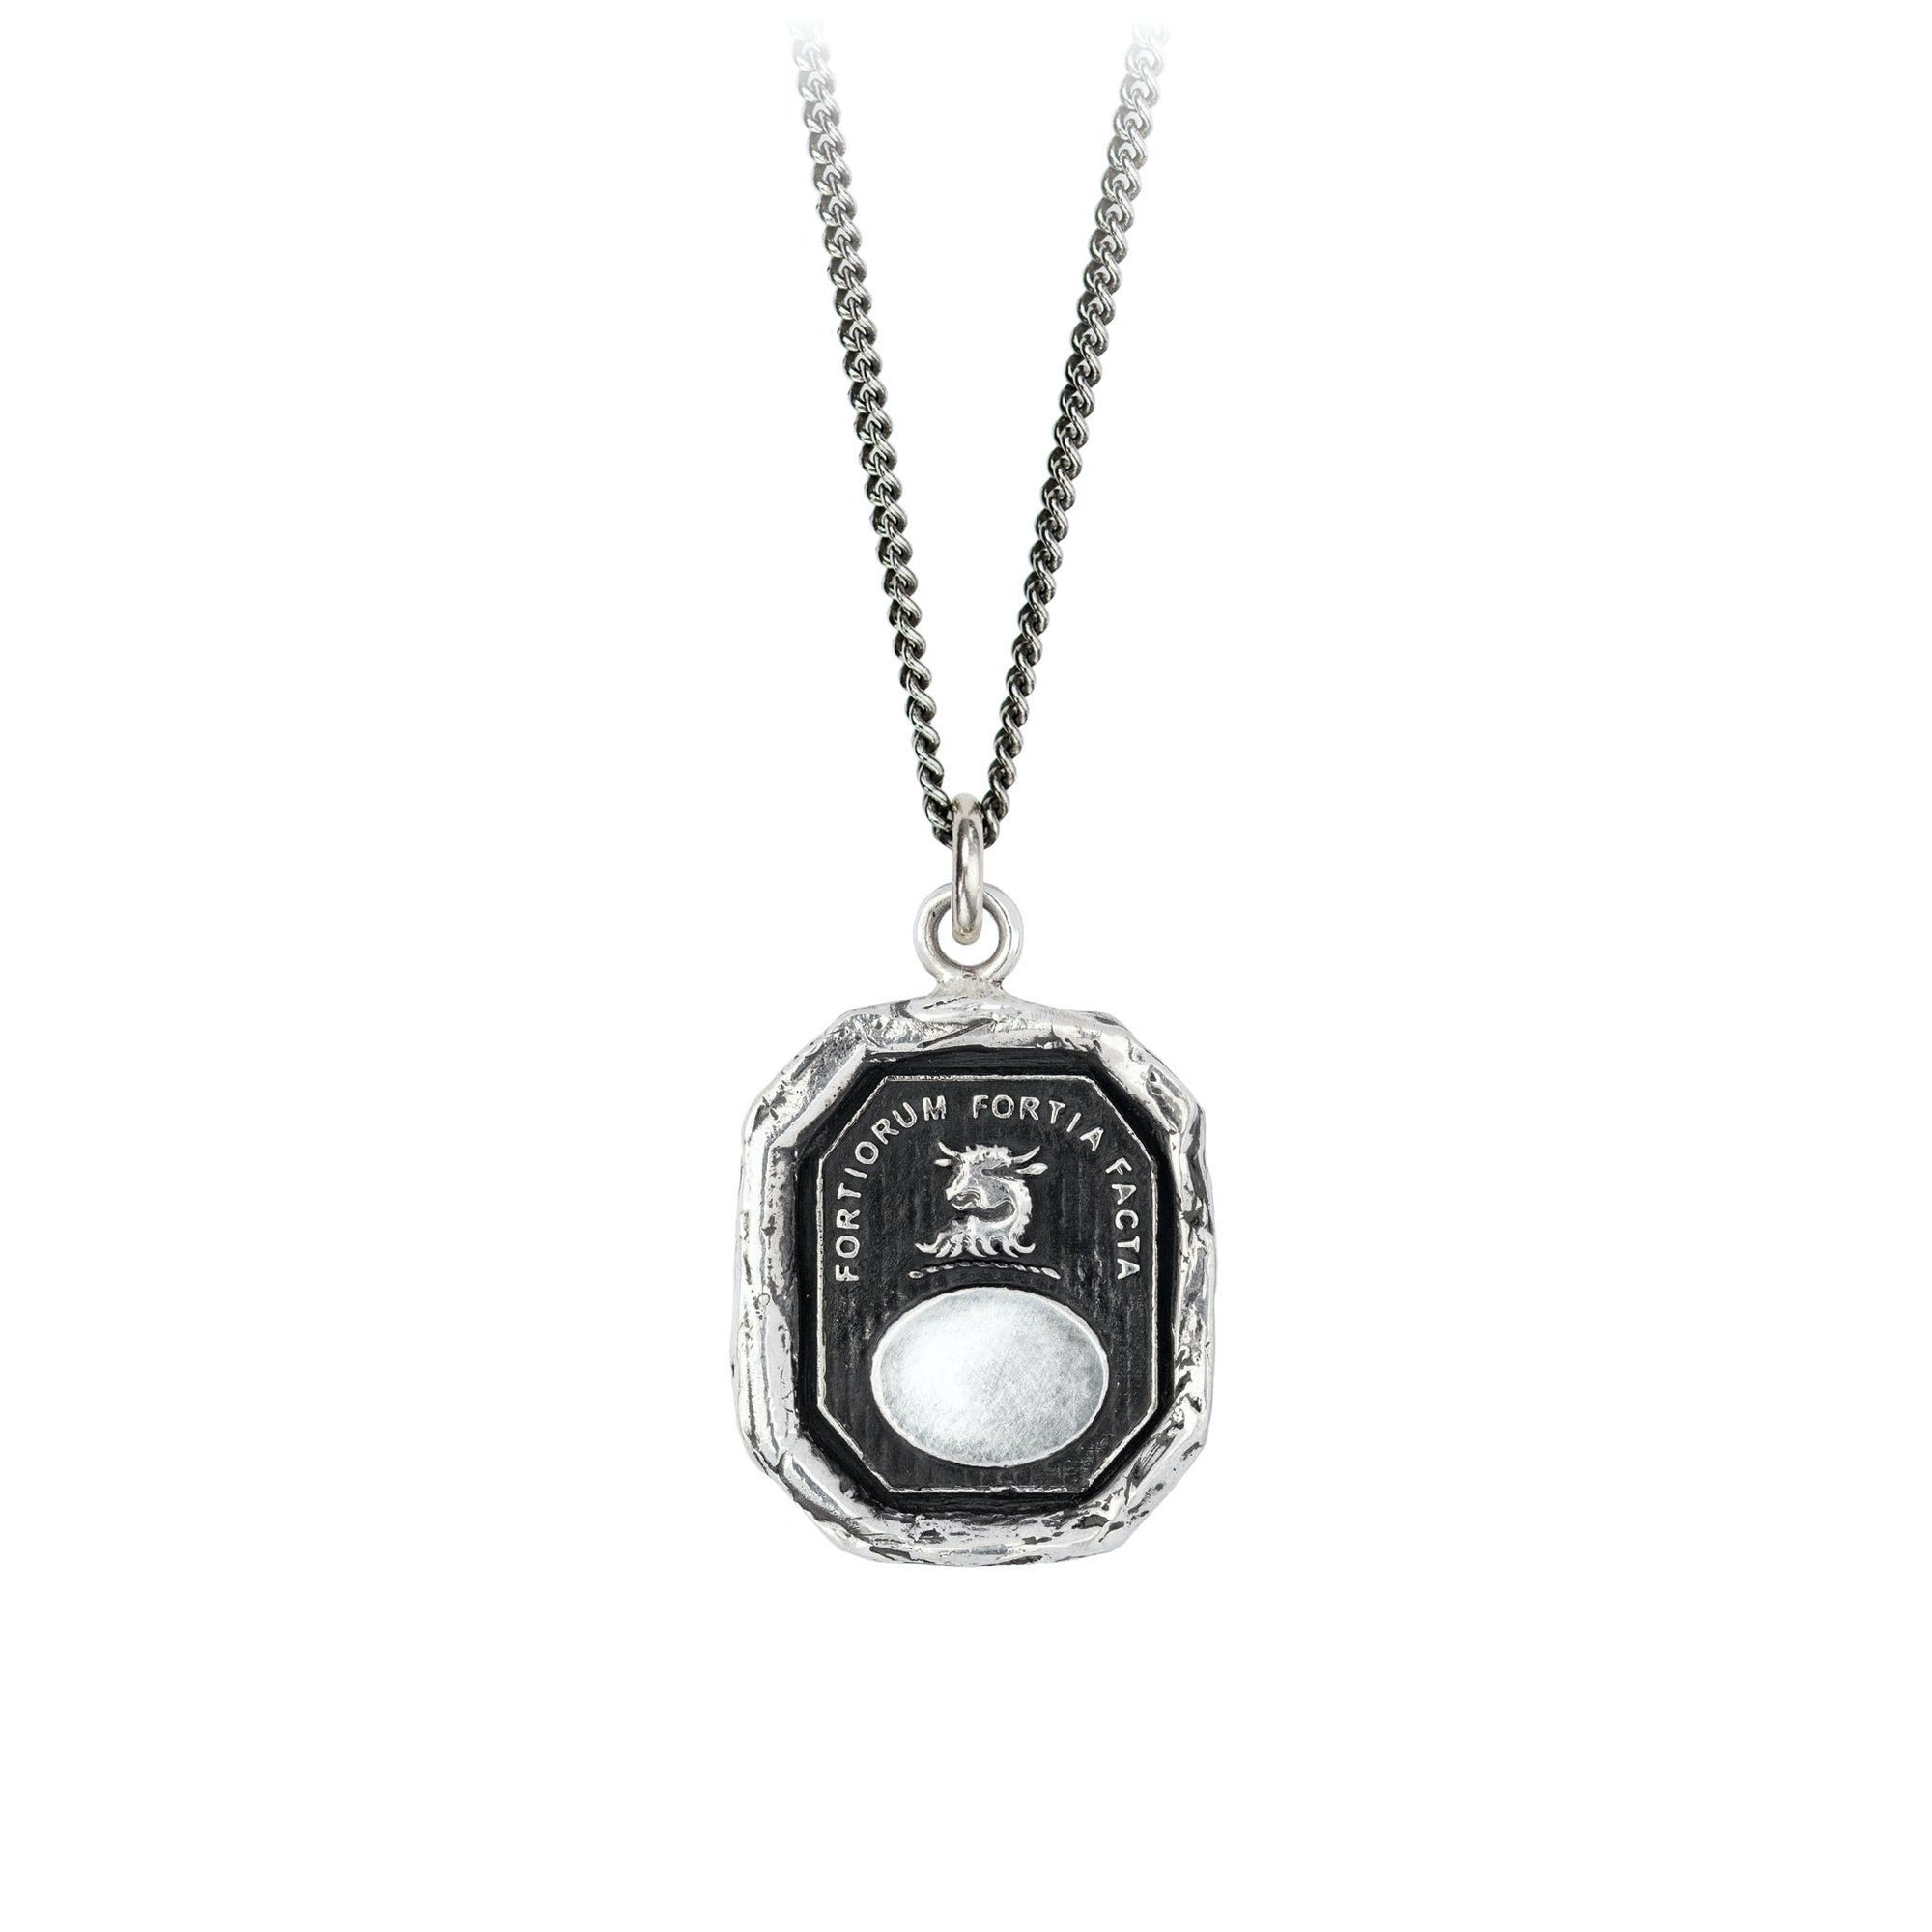 Pyrrha Father Engravable Talisman Necklace Fine Curb Chain Silver